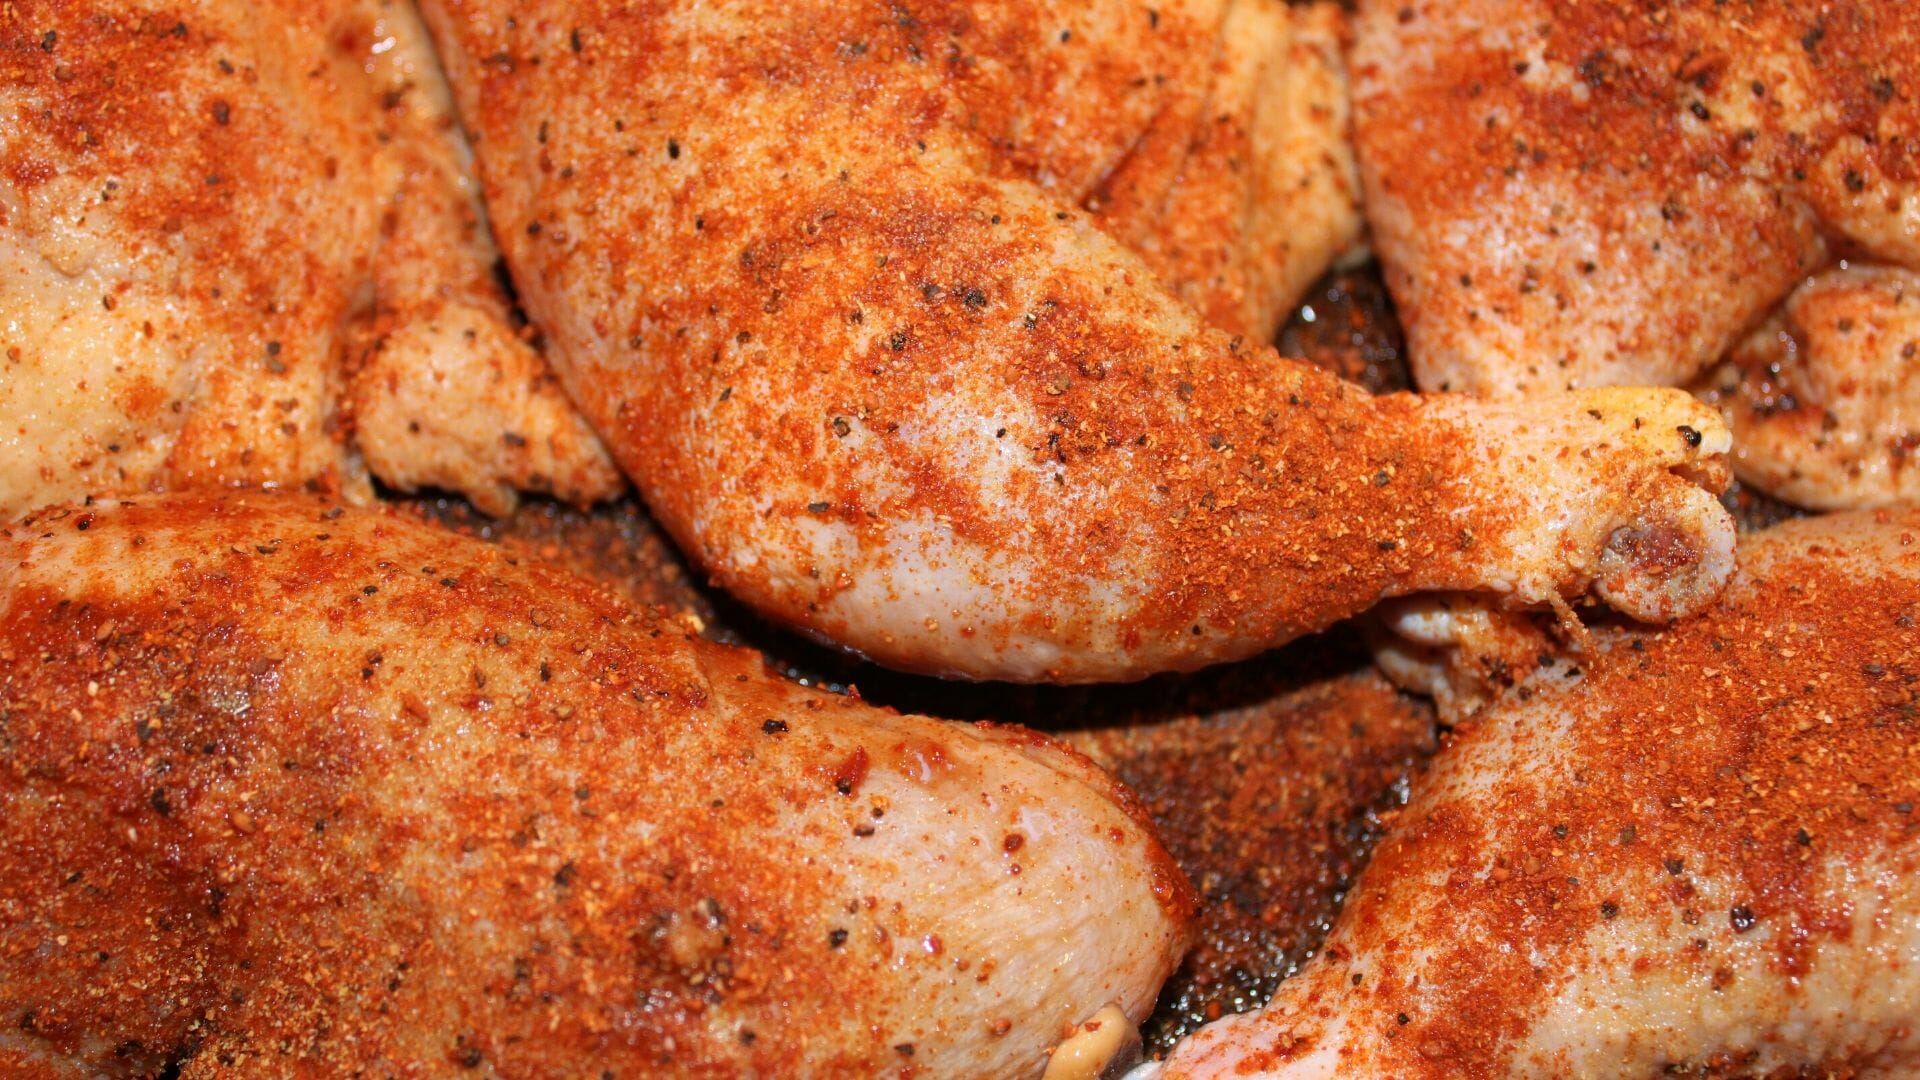 Make your Own Quick and Easy Chicken Rubs